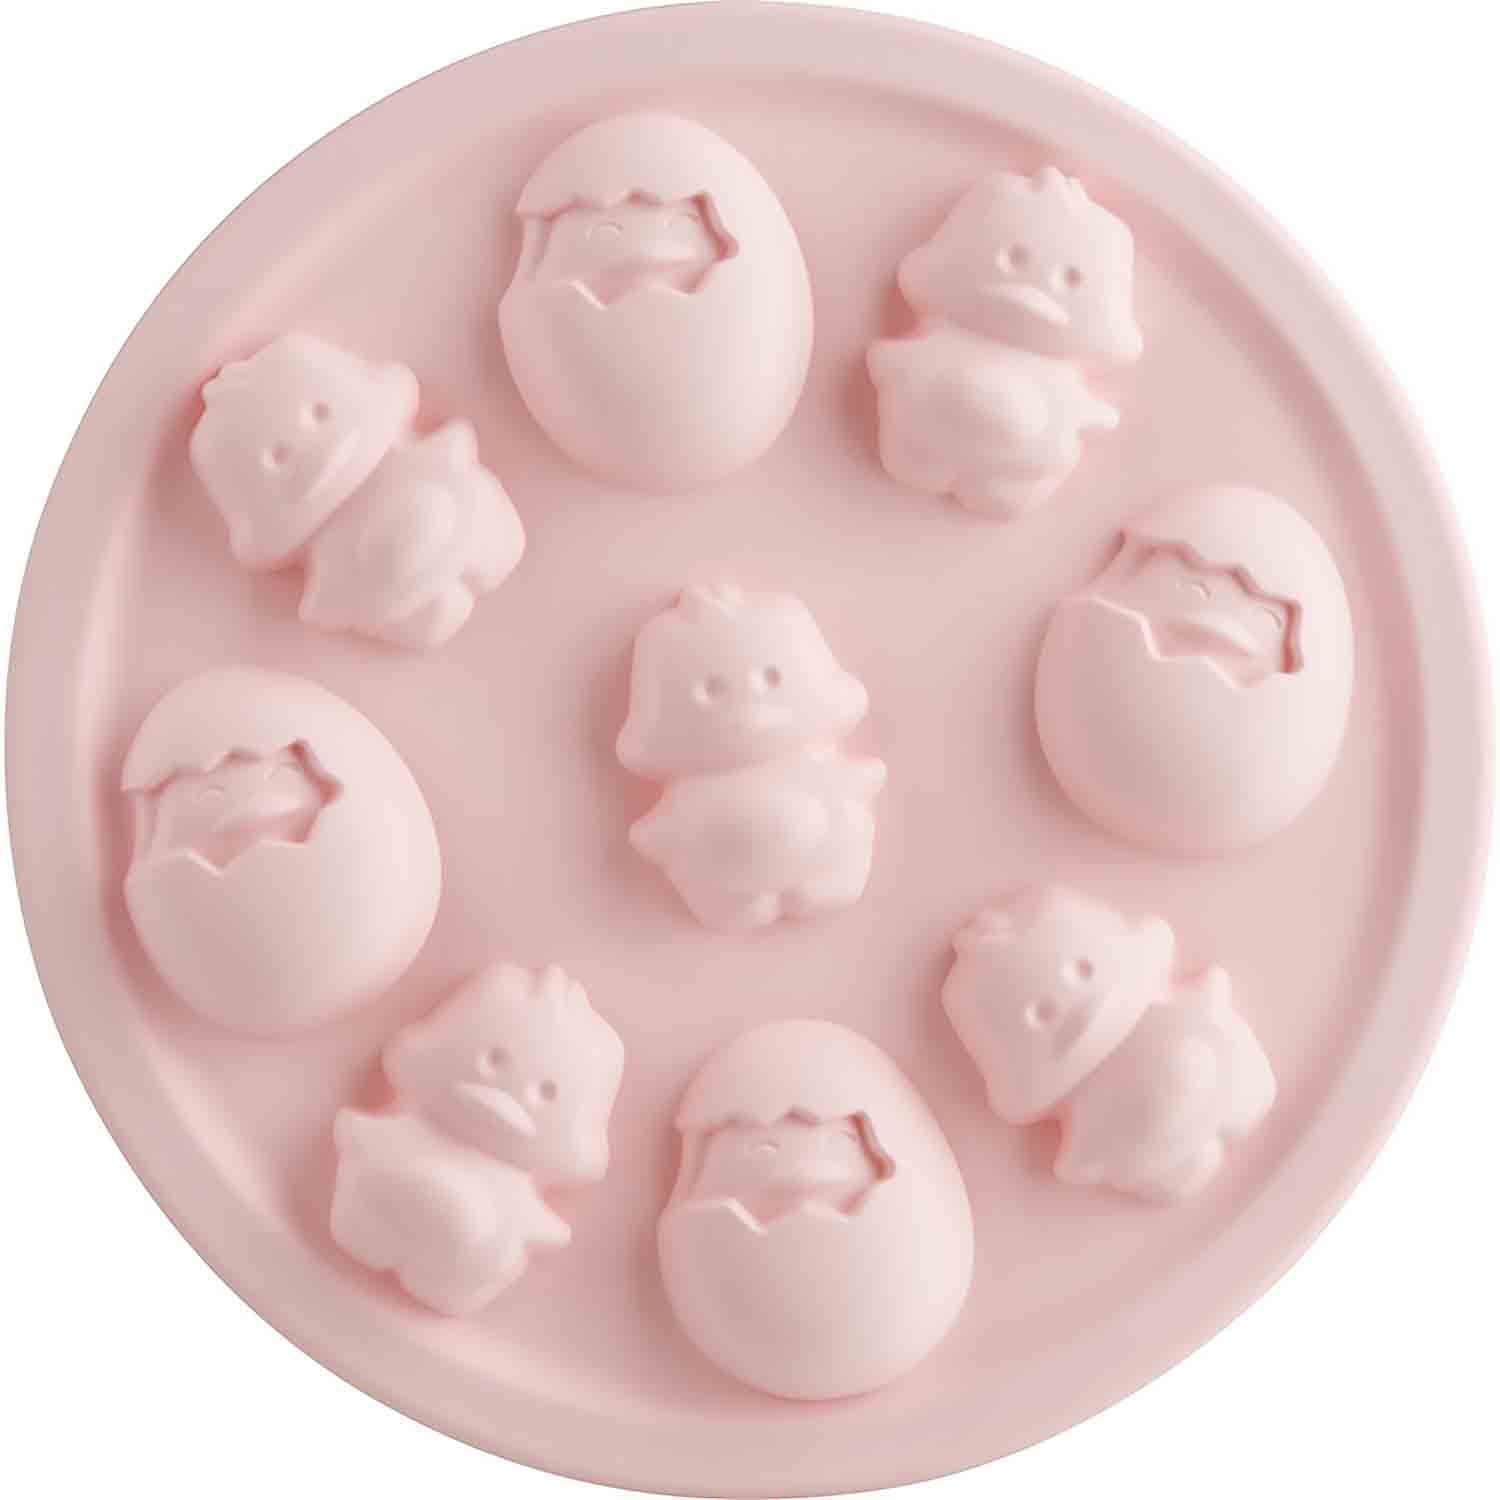 Chicks Silicone Treat Pan